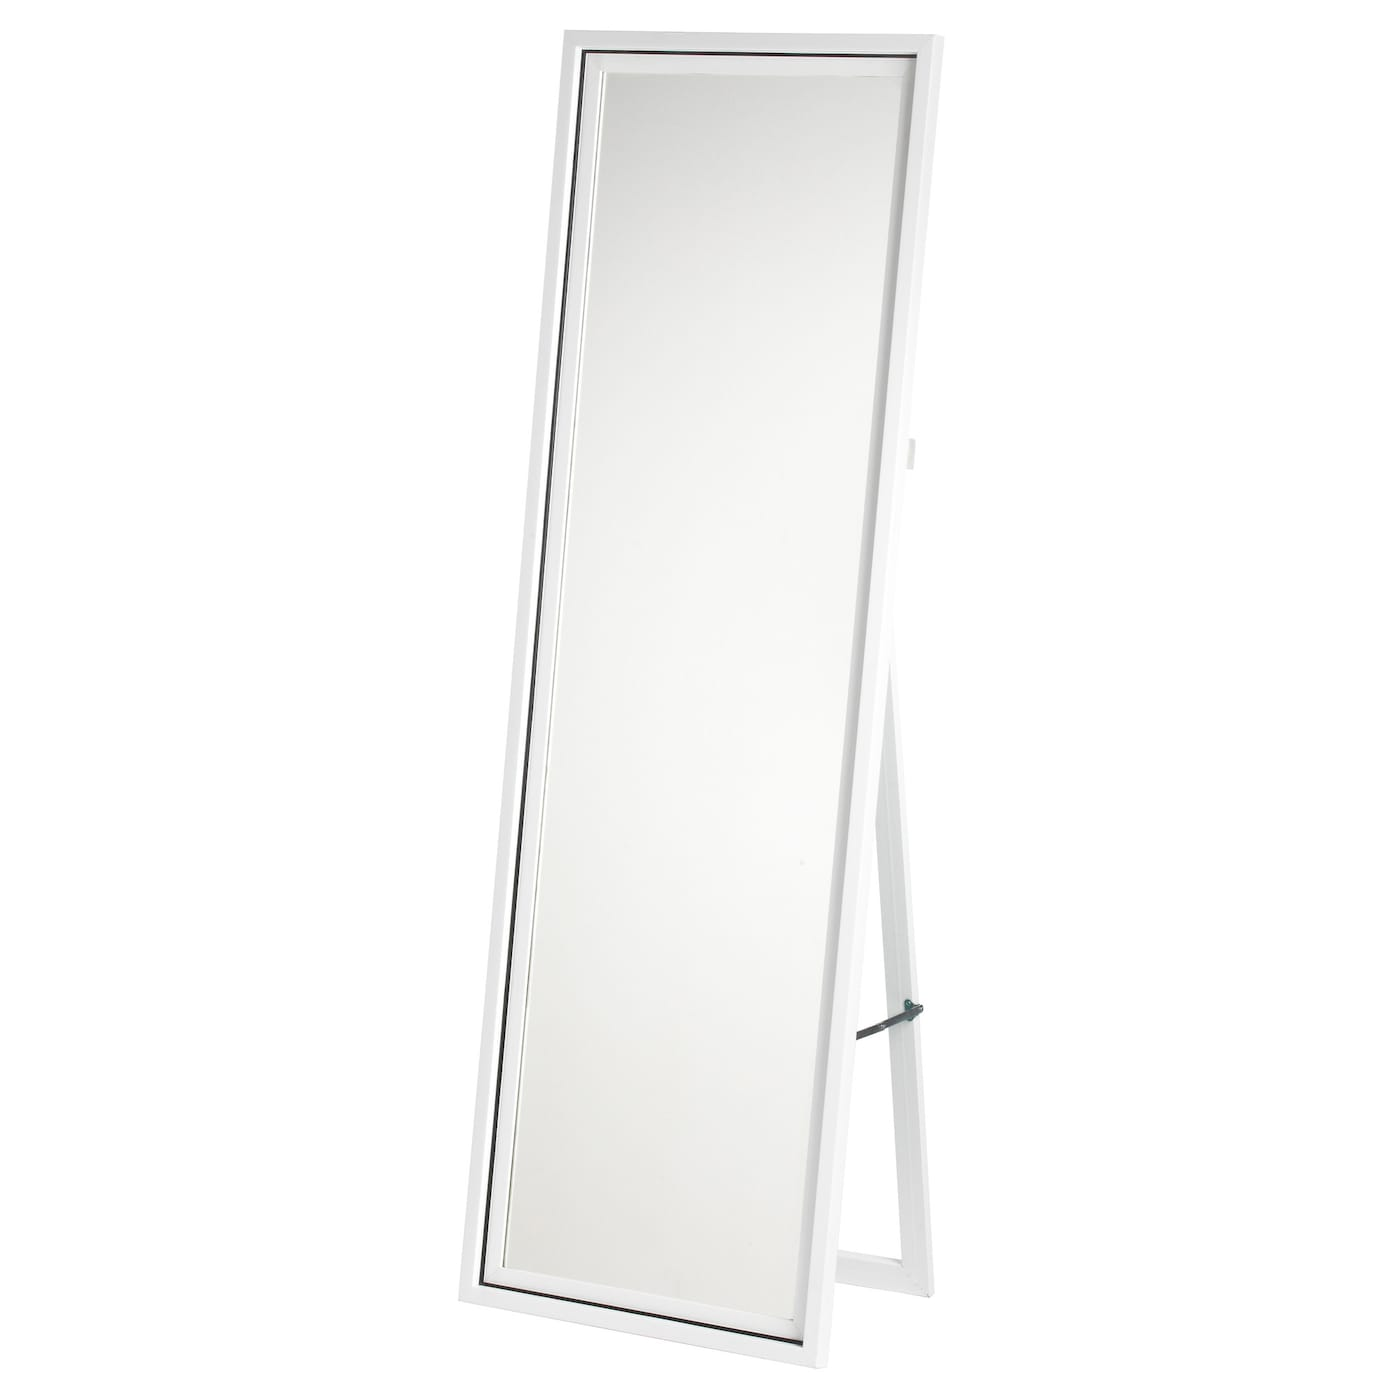 Harran standing mirror white white 49x149 cm ikea for White long standing mirror